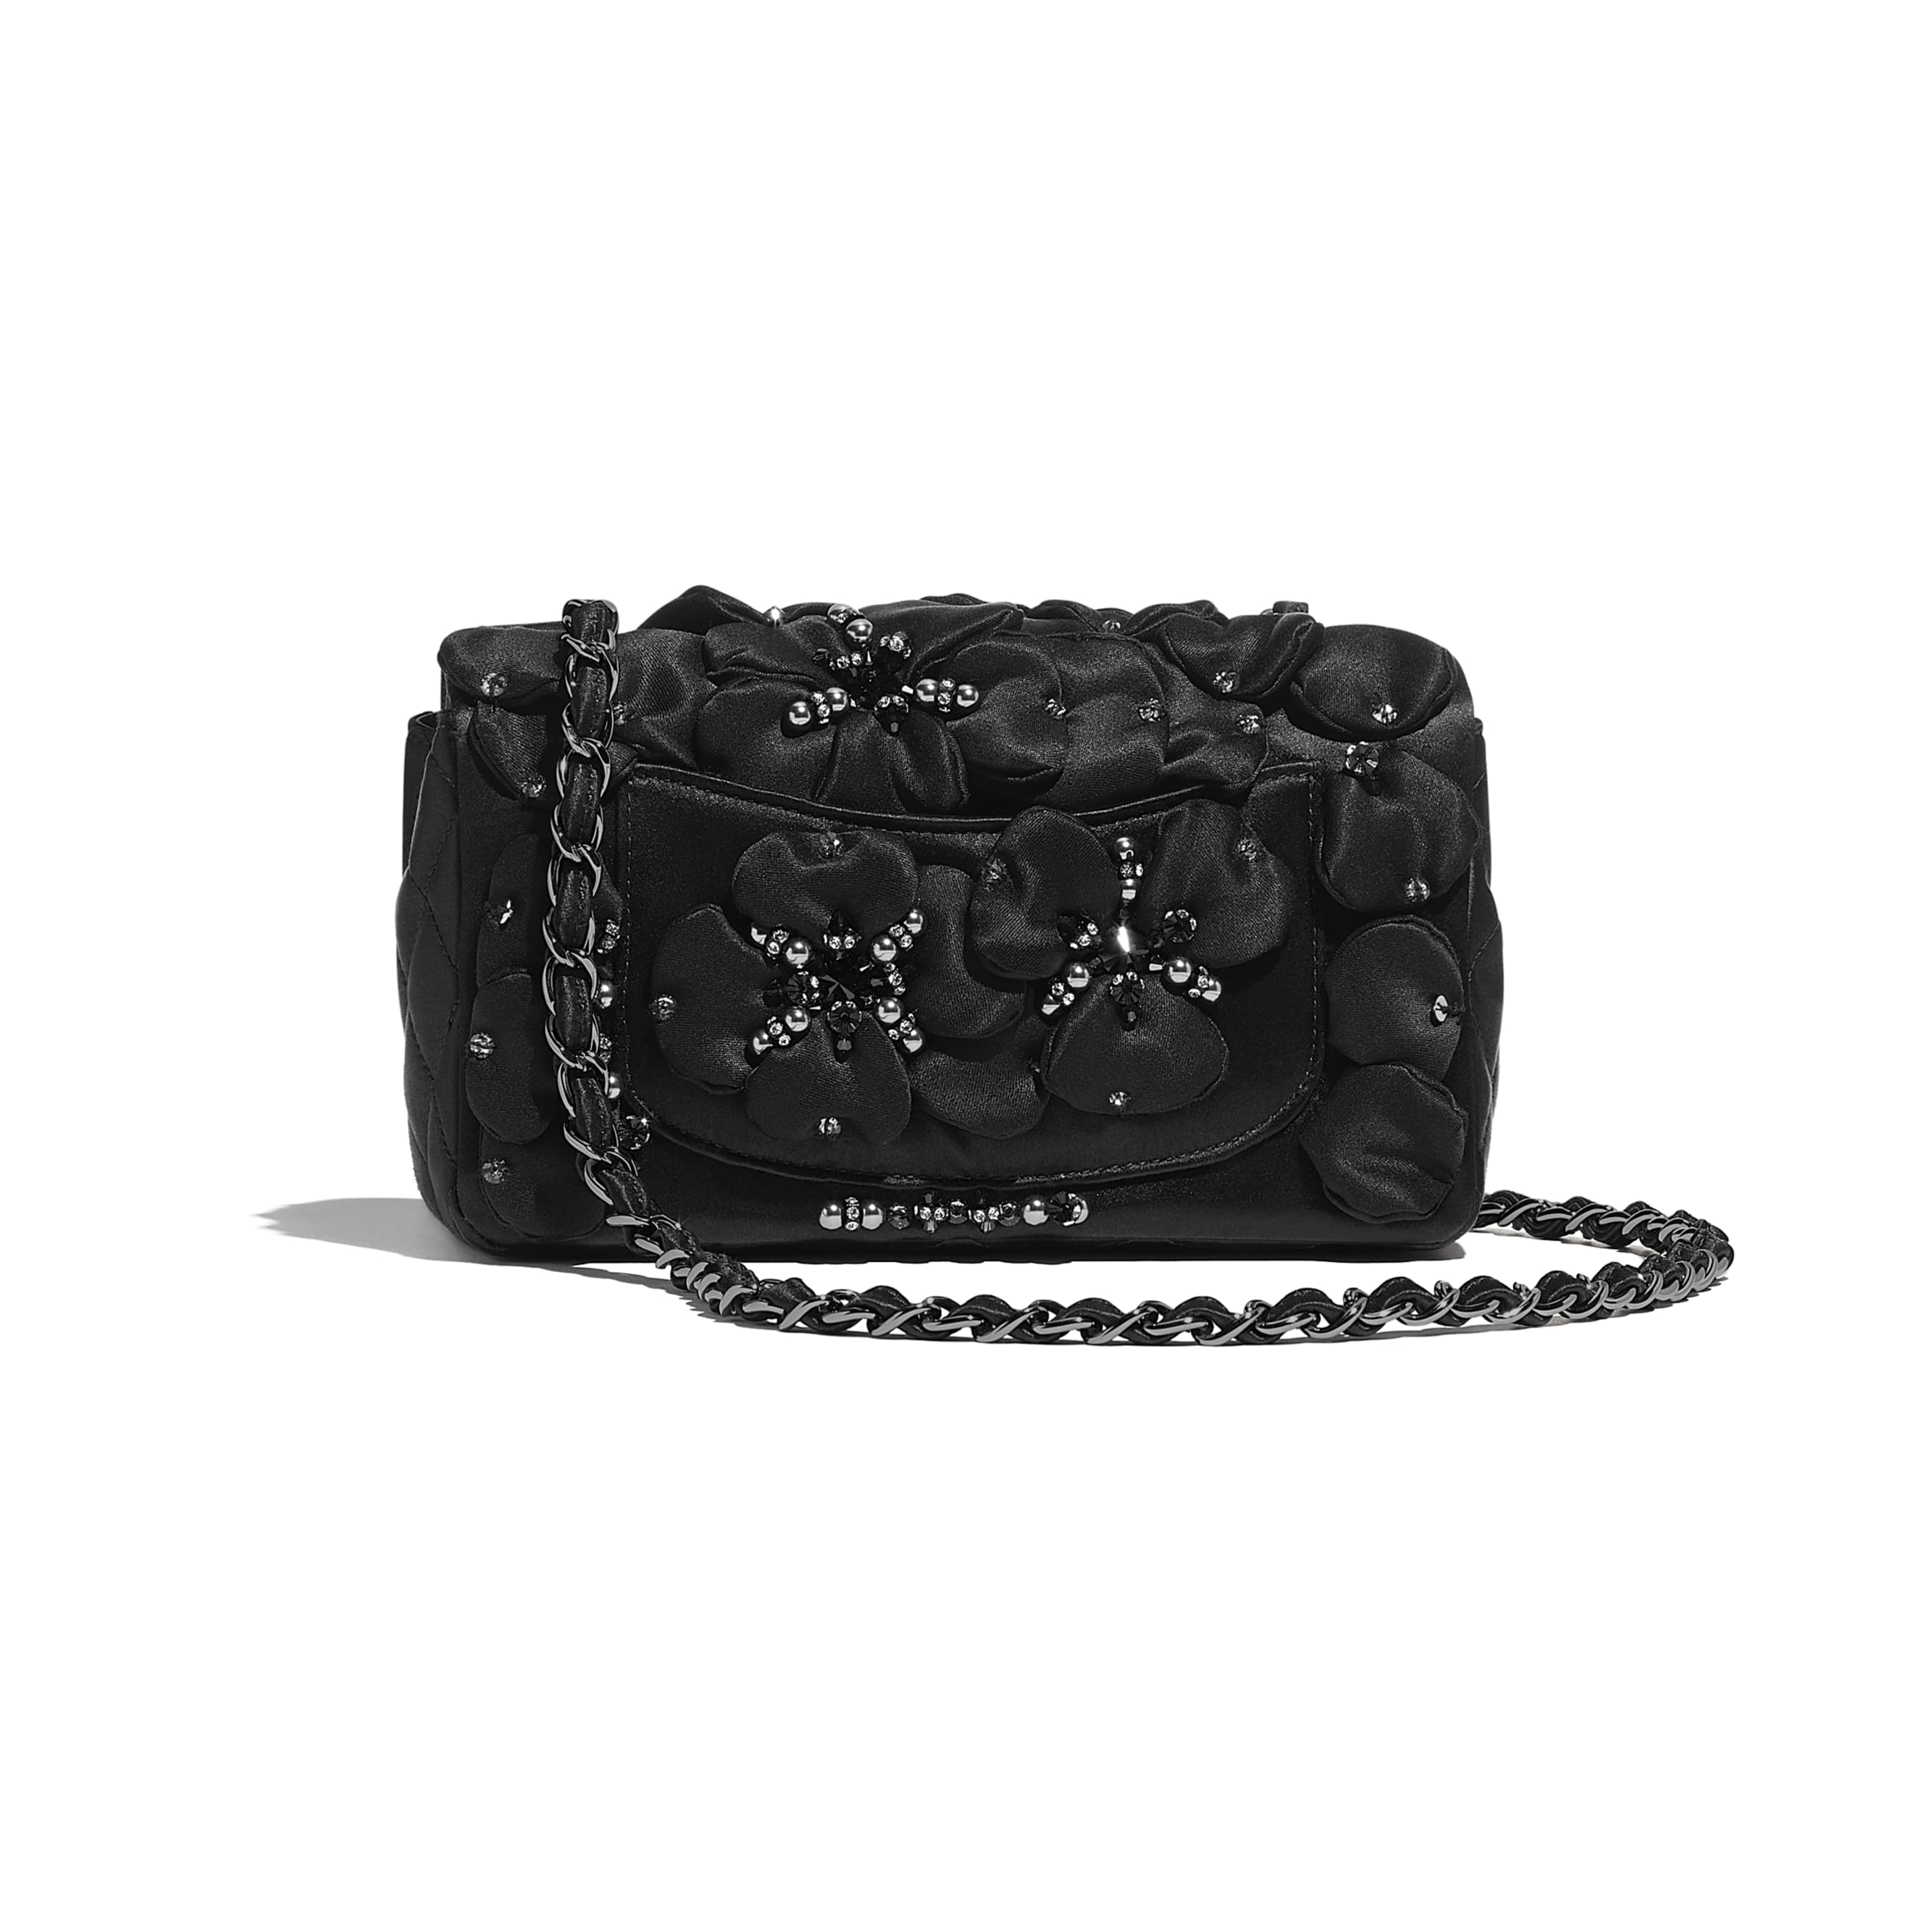 Mini Flap Bag - Black - Satin, Diamanté & Ruthenium-Finish Metal - CHANEL - Alternative view - see standard sized version